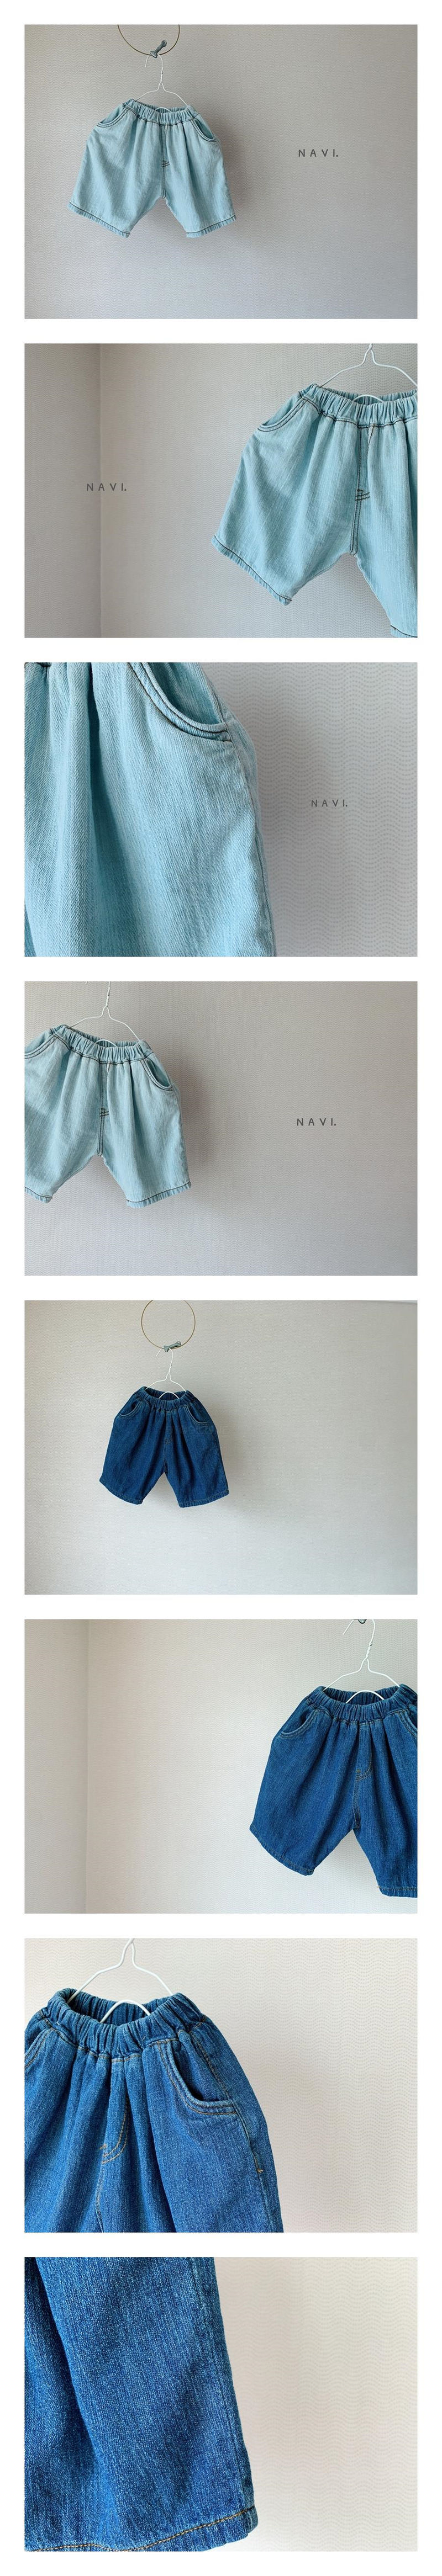 NAVI - Korean Children Fashion - #Kfashion4kids - Light Denim Pants